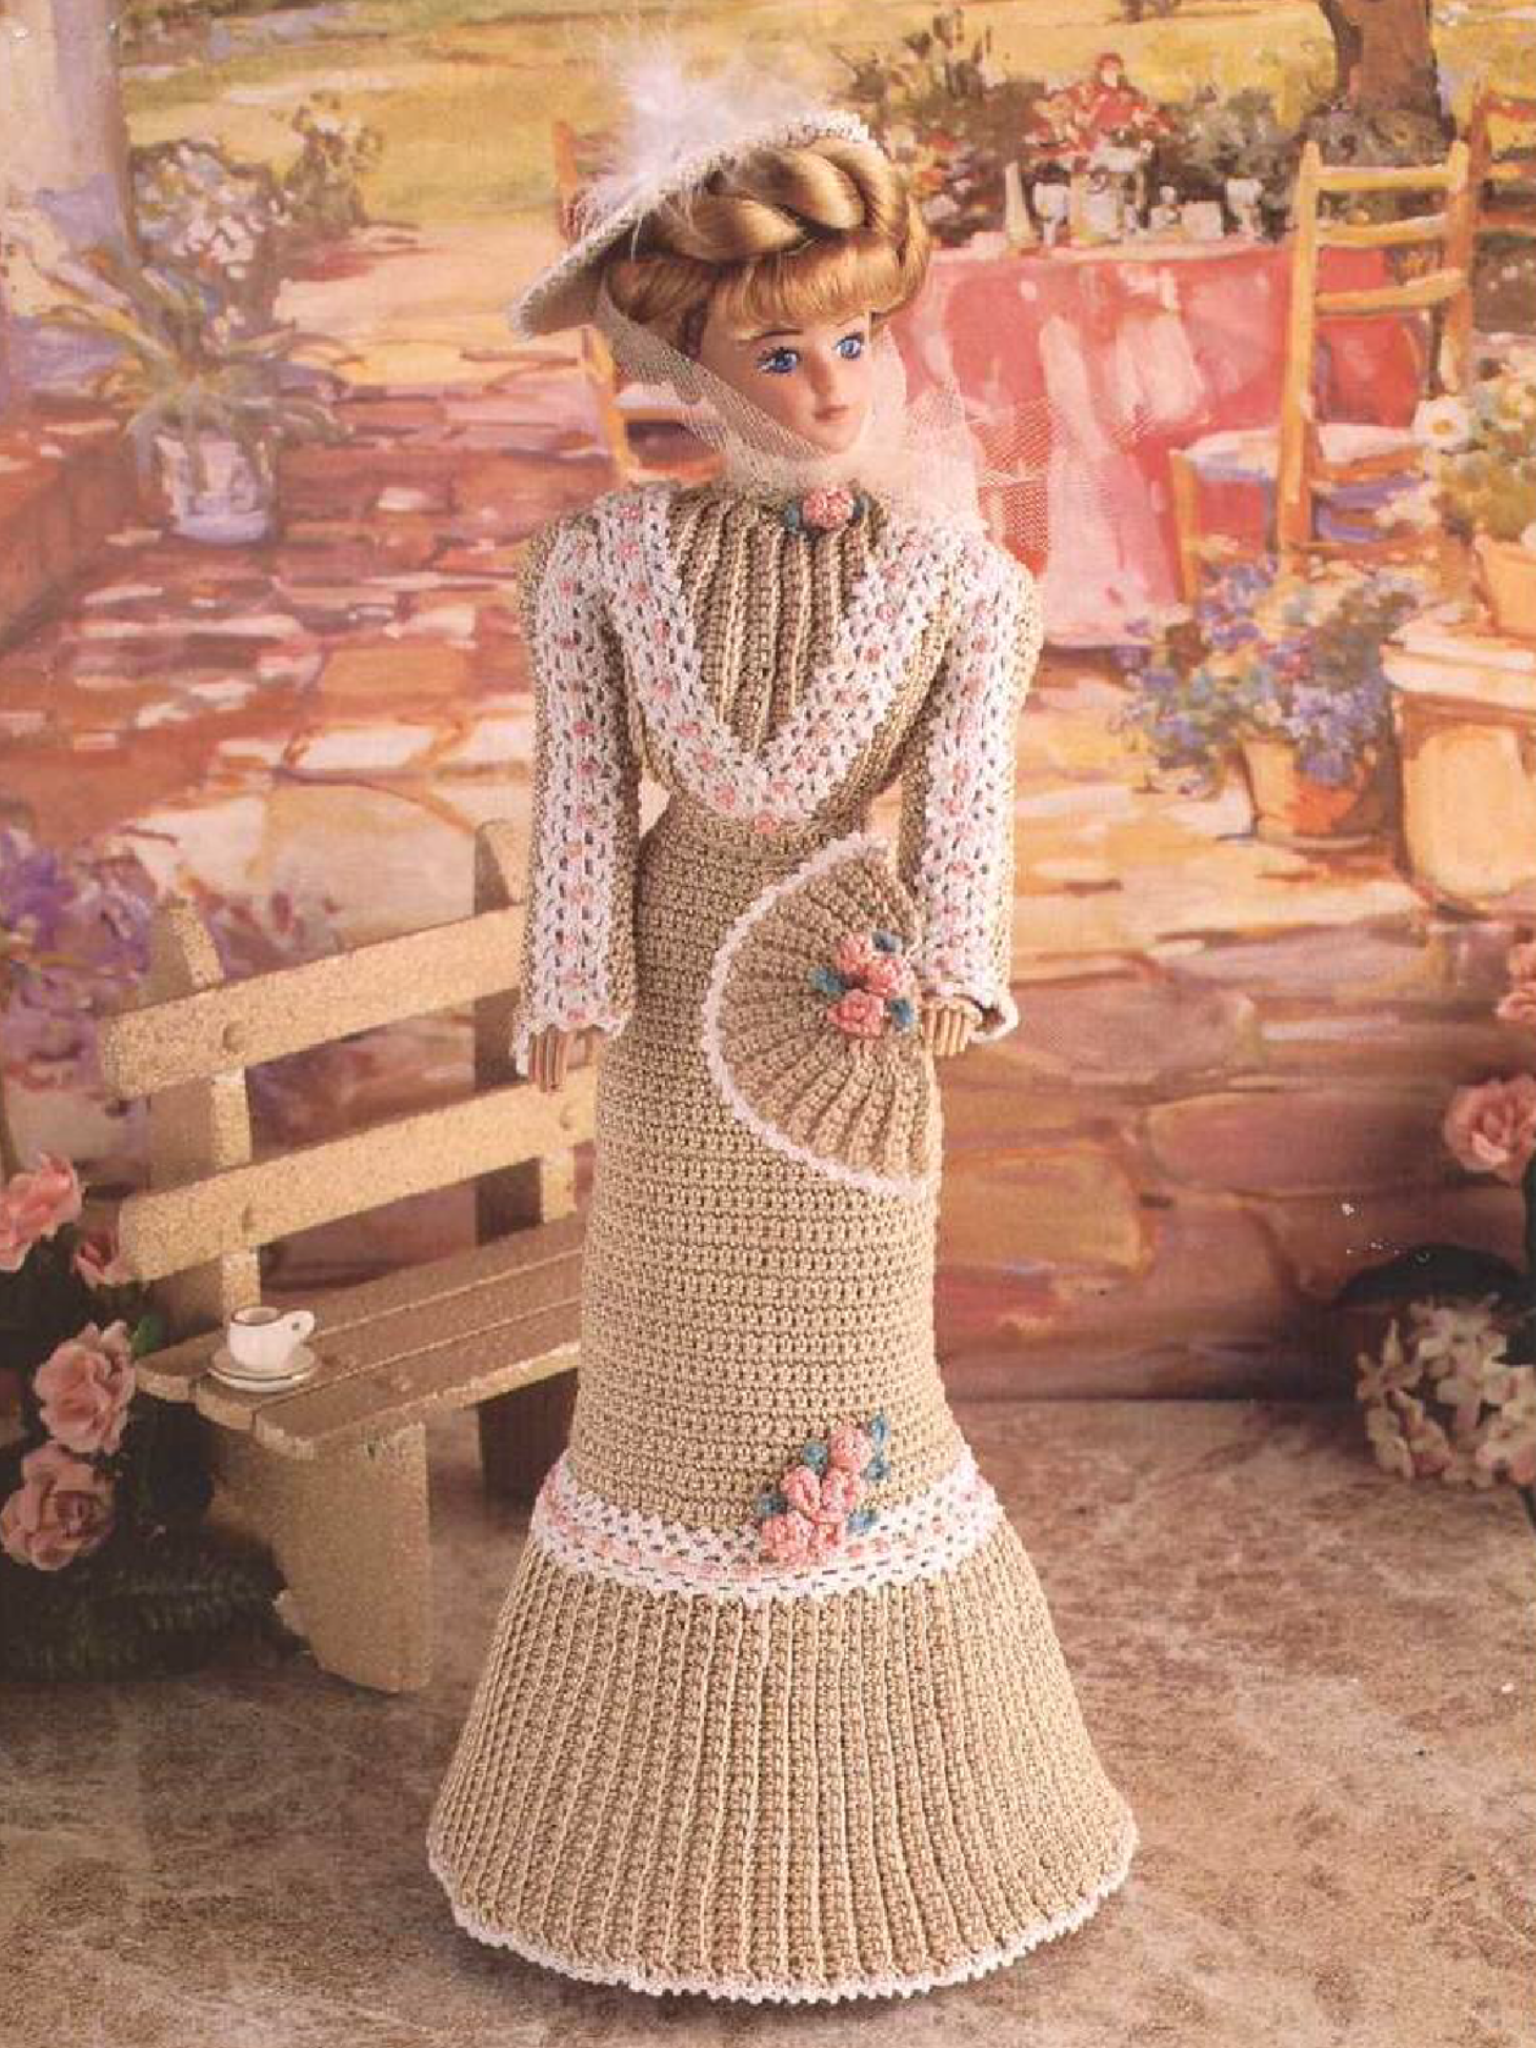 Pin by Candy on CrochetCostume ball dresses Barbie